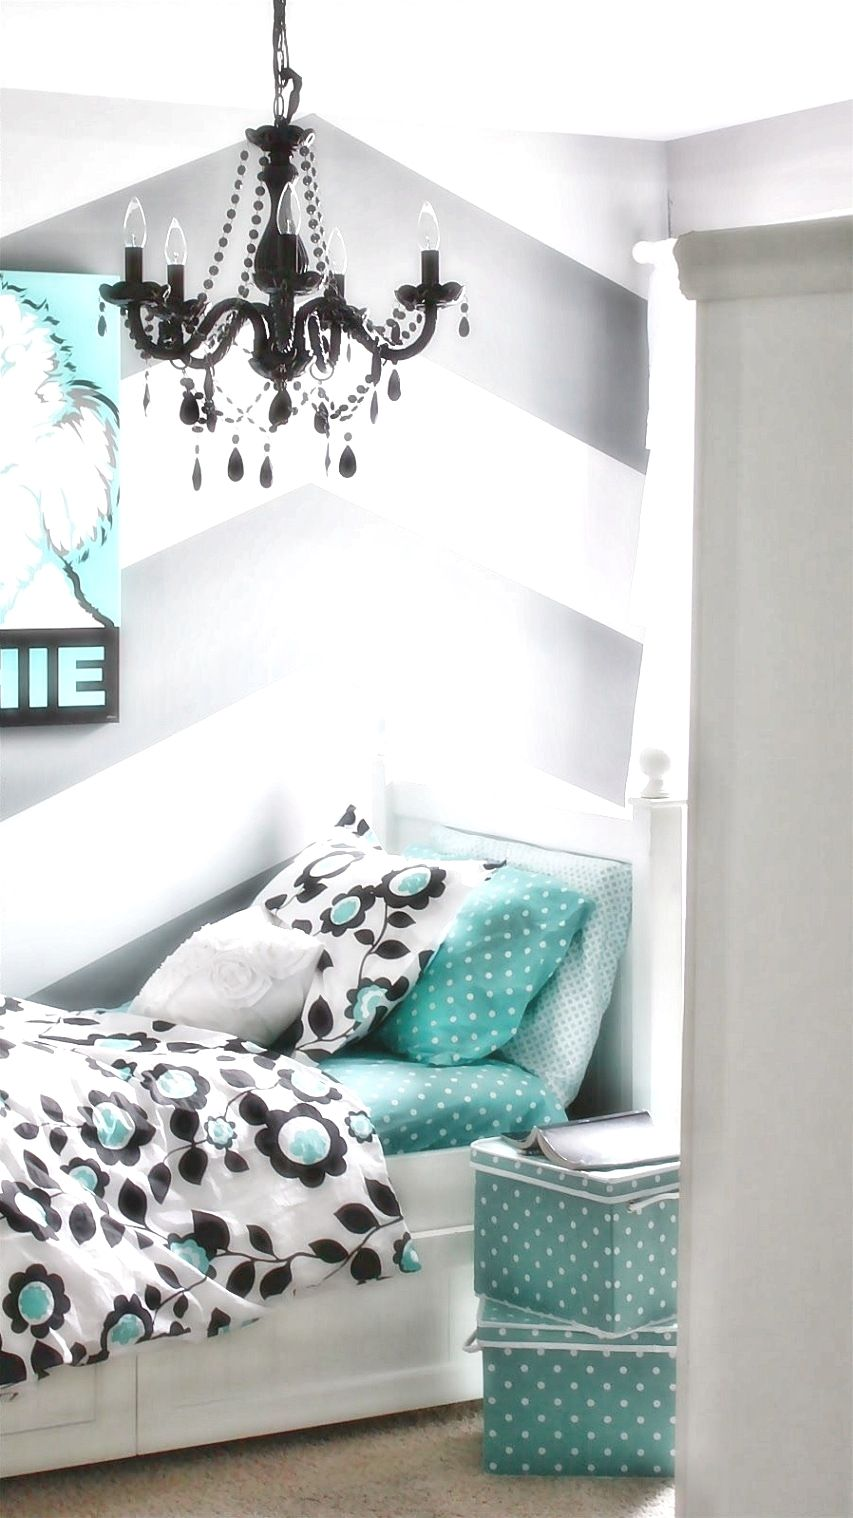 Teenage girl room design tips  good home tip is to be consistent with also rh pinterest